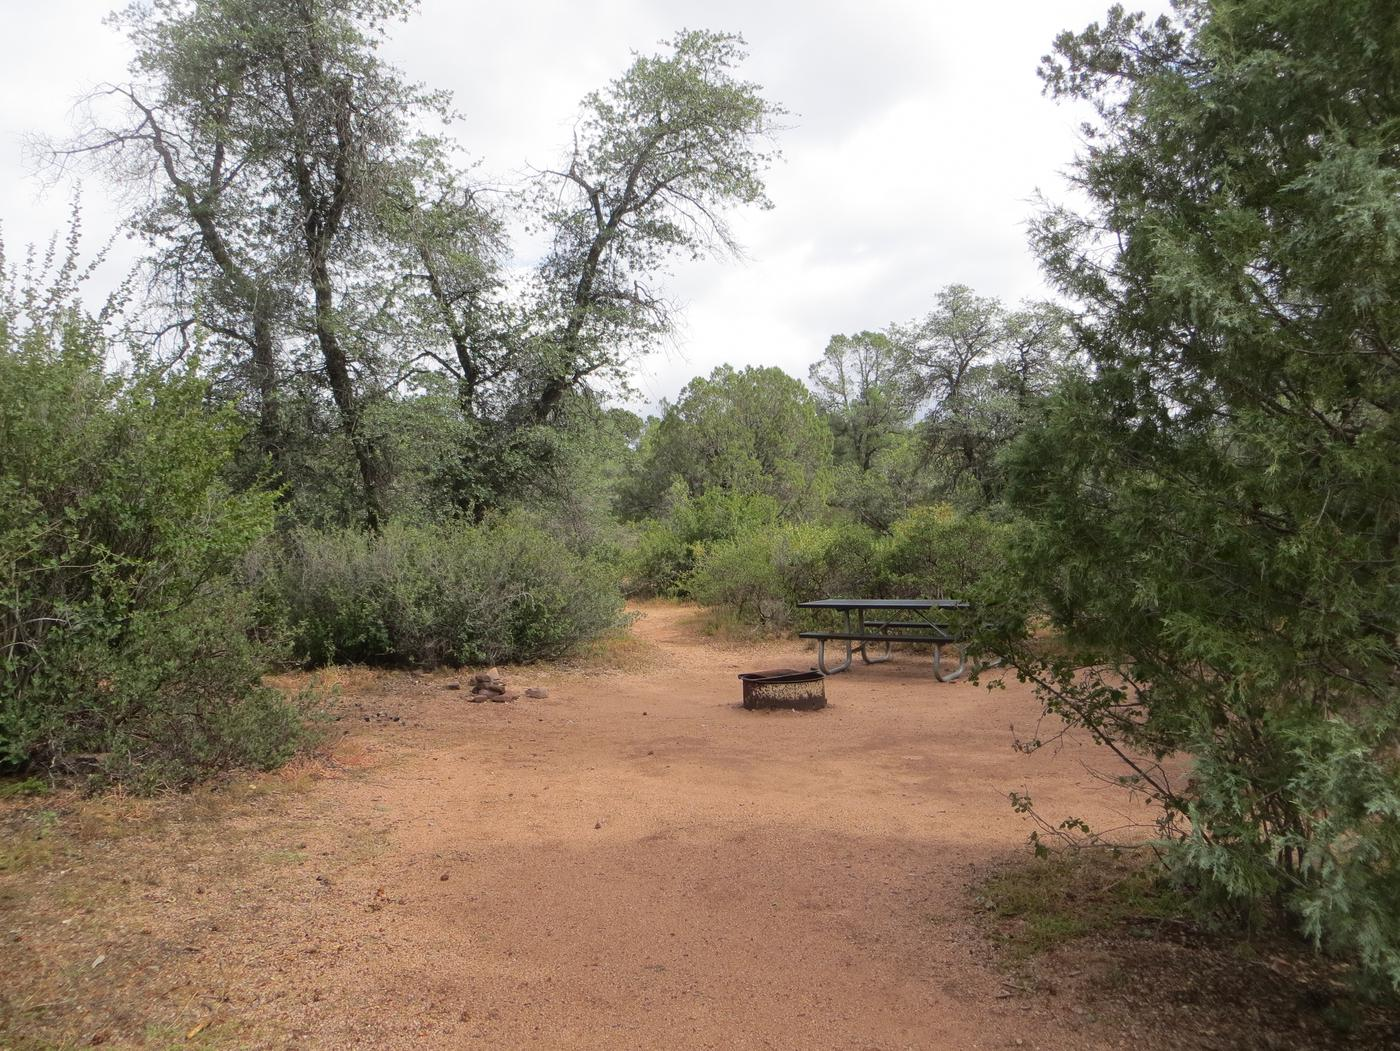 Houston Mesa, Mountain Lion Loop site #11 featuring large camping space with picnic table and fire pit.